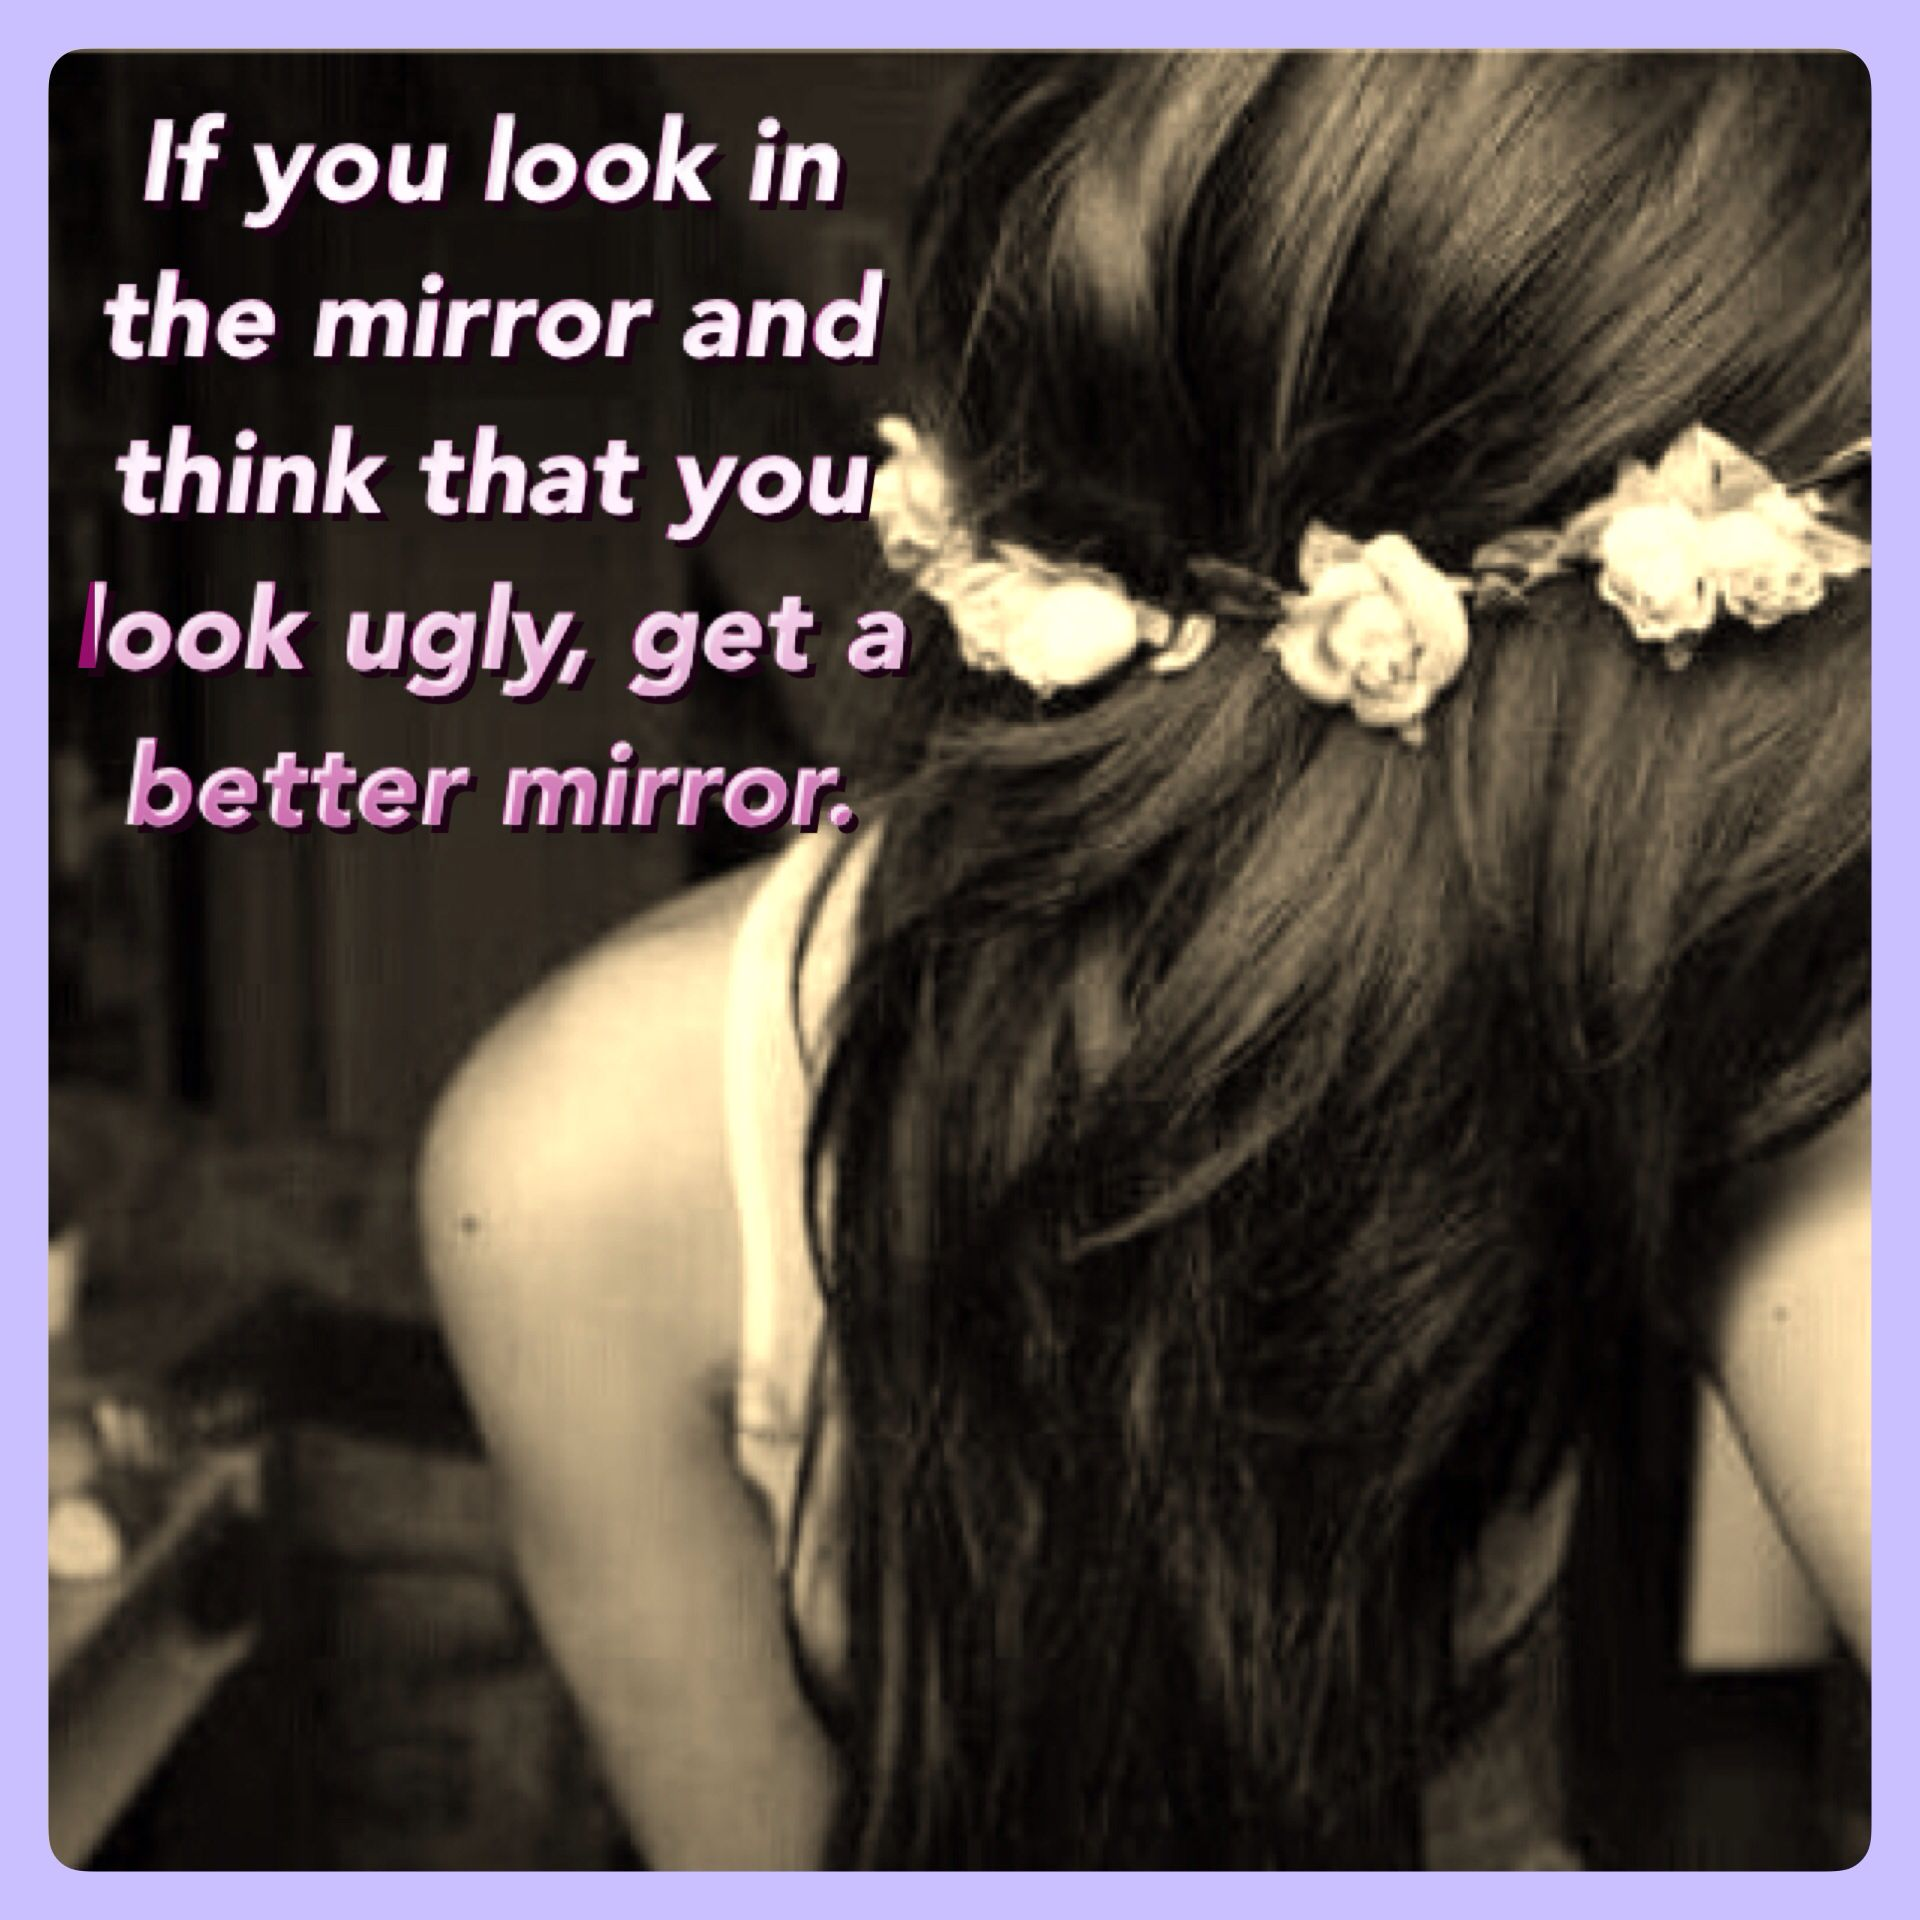 If you look in the mirror and think that you look ugly, get a better mirror:) like this up please